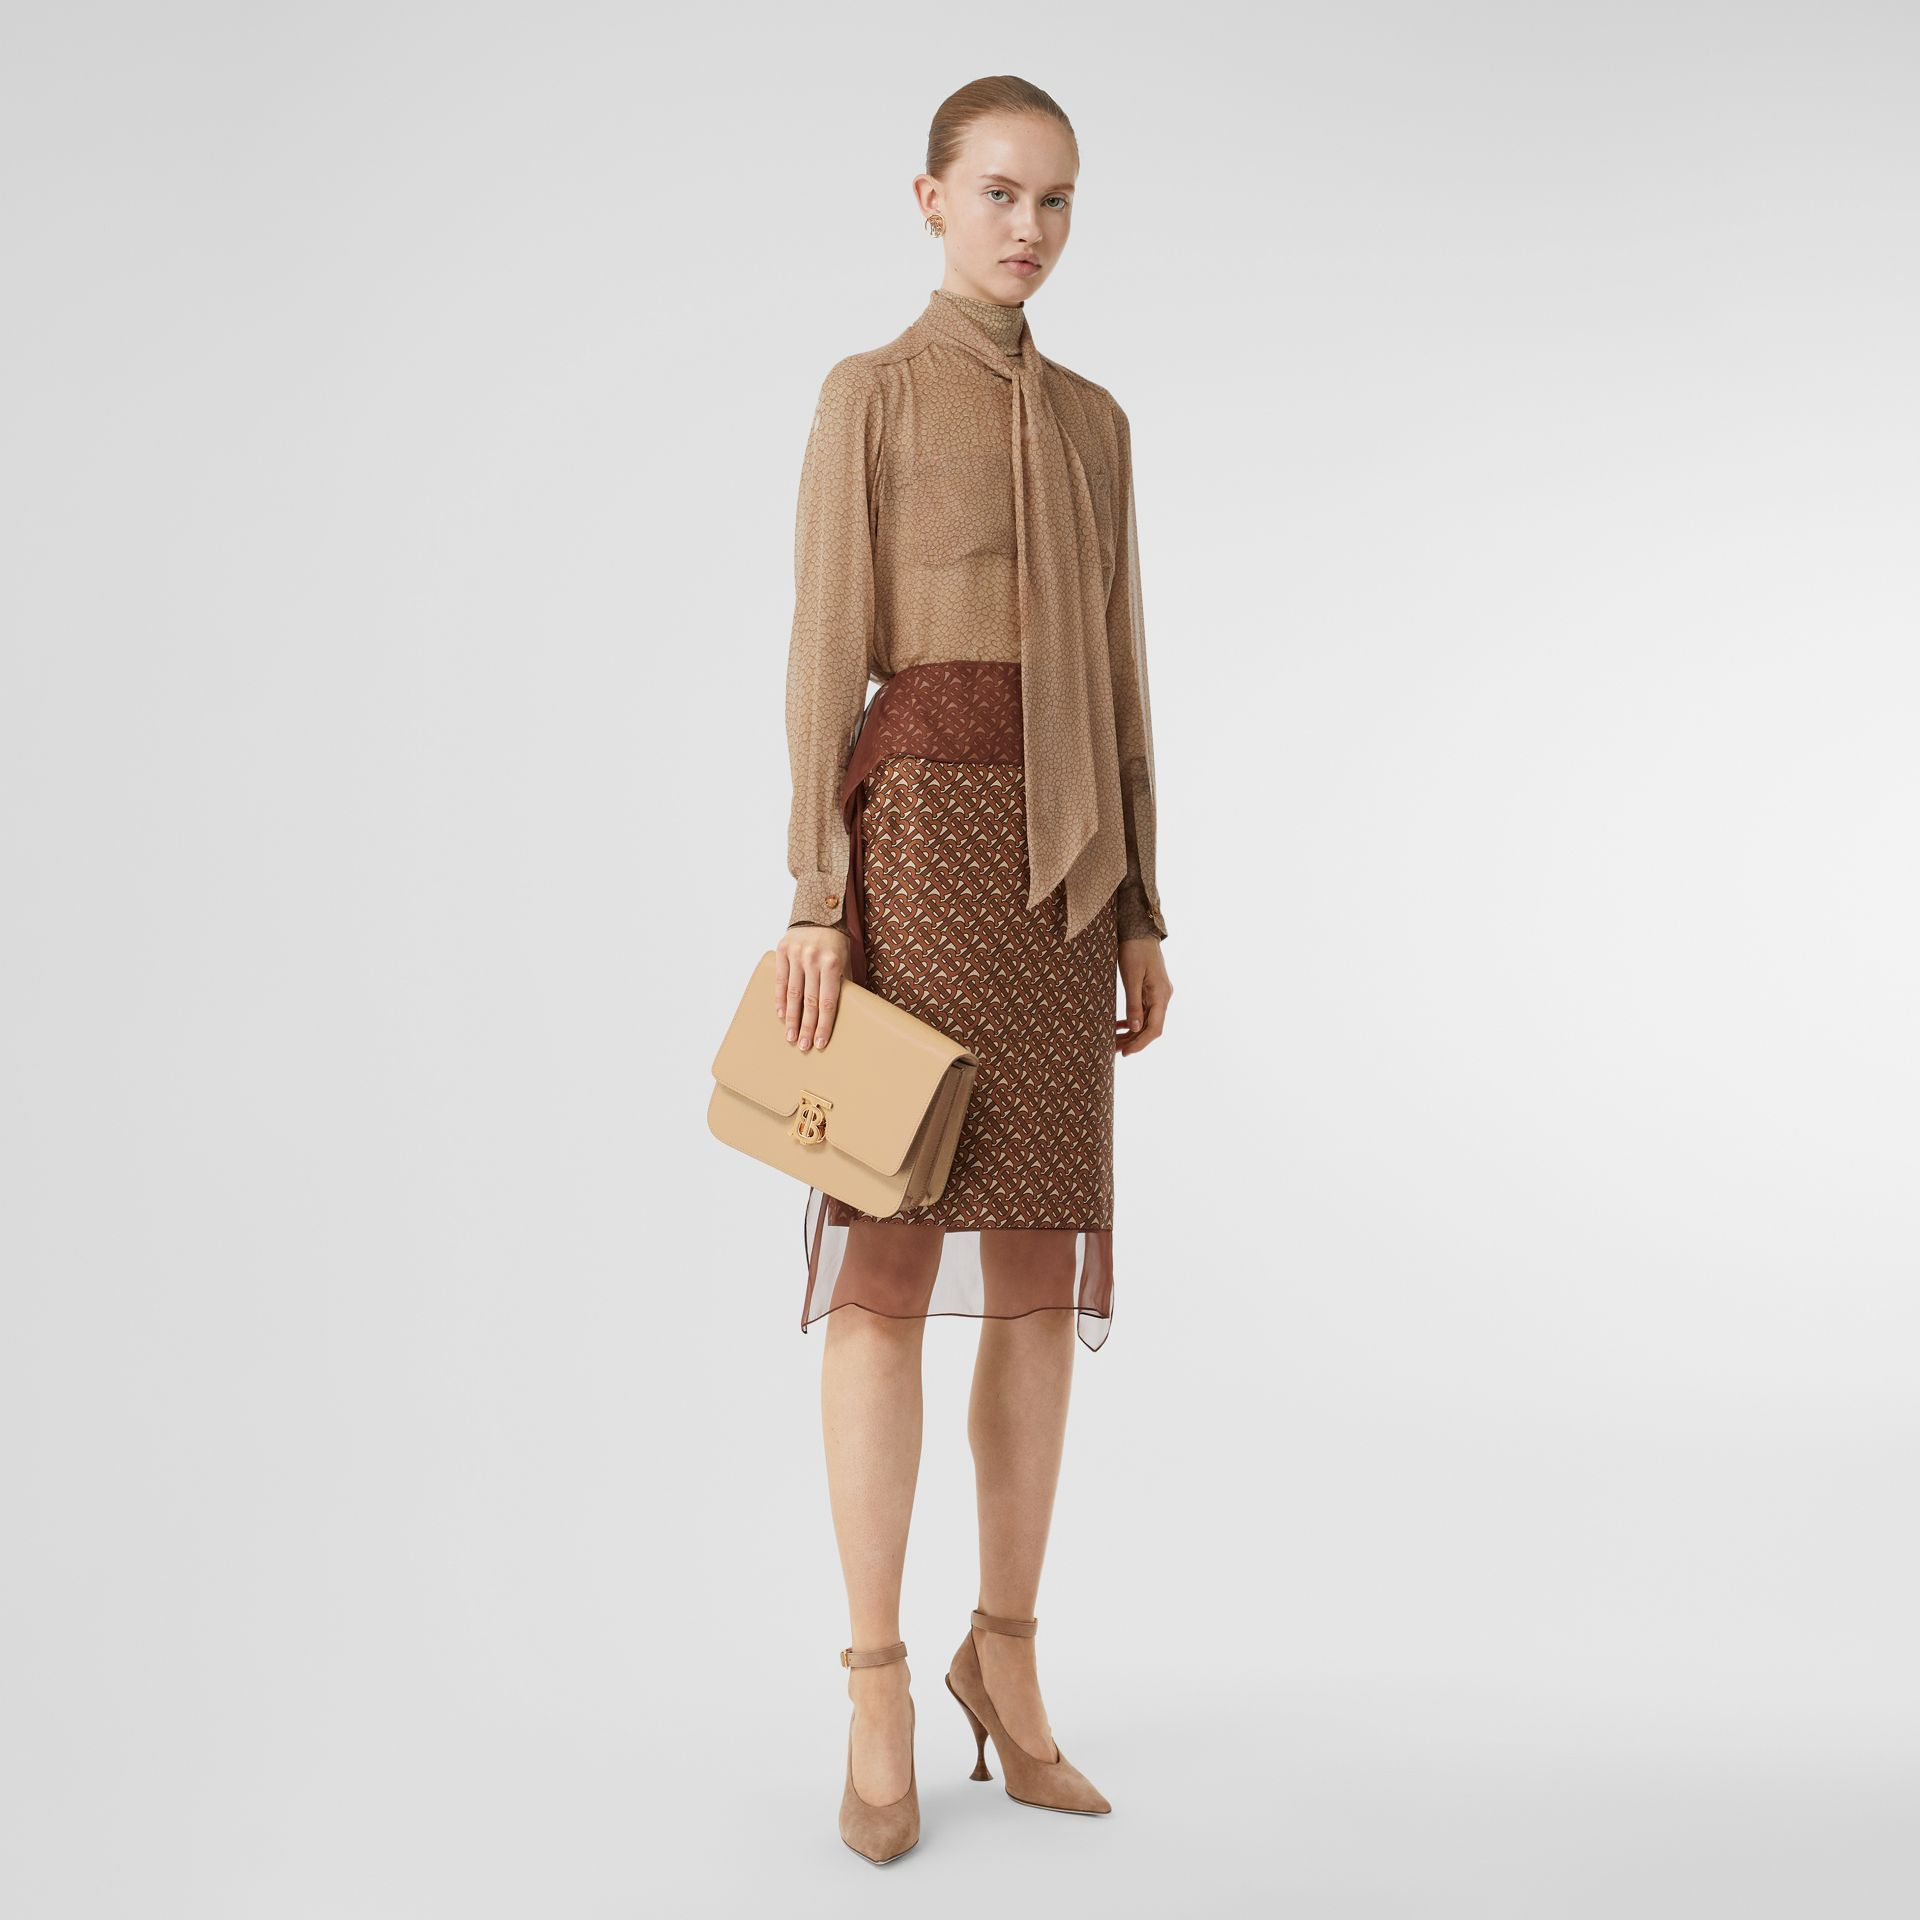 Medium Grainy Leather TB Bag in Archive Beige - Women | Burberry - gallery image 5